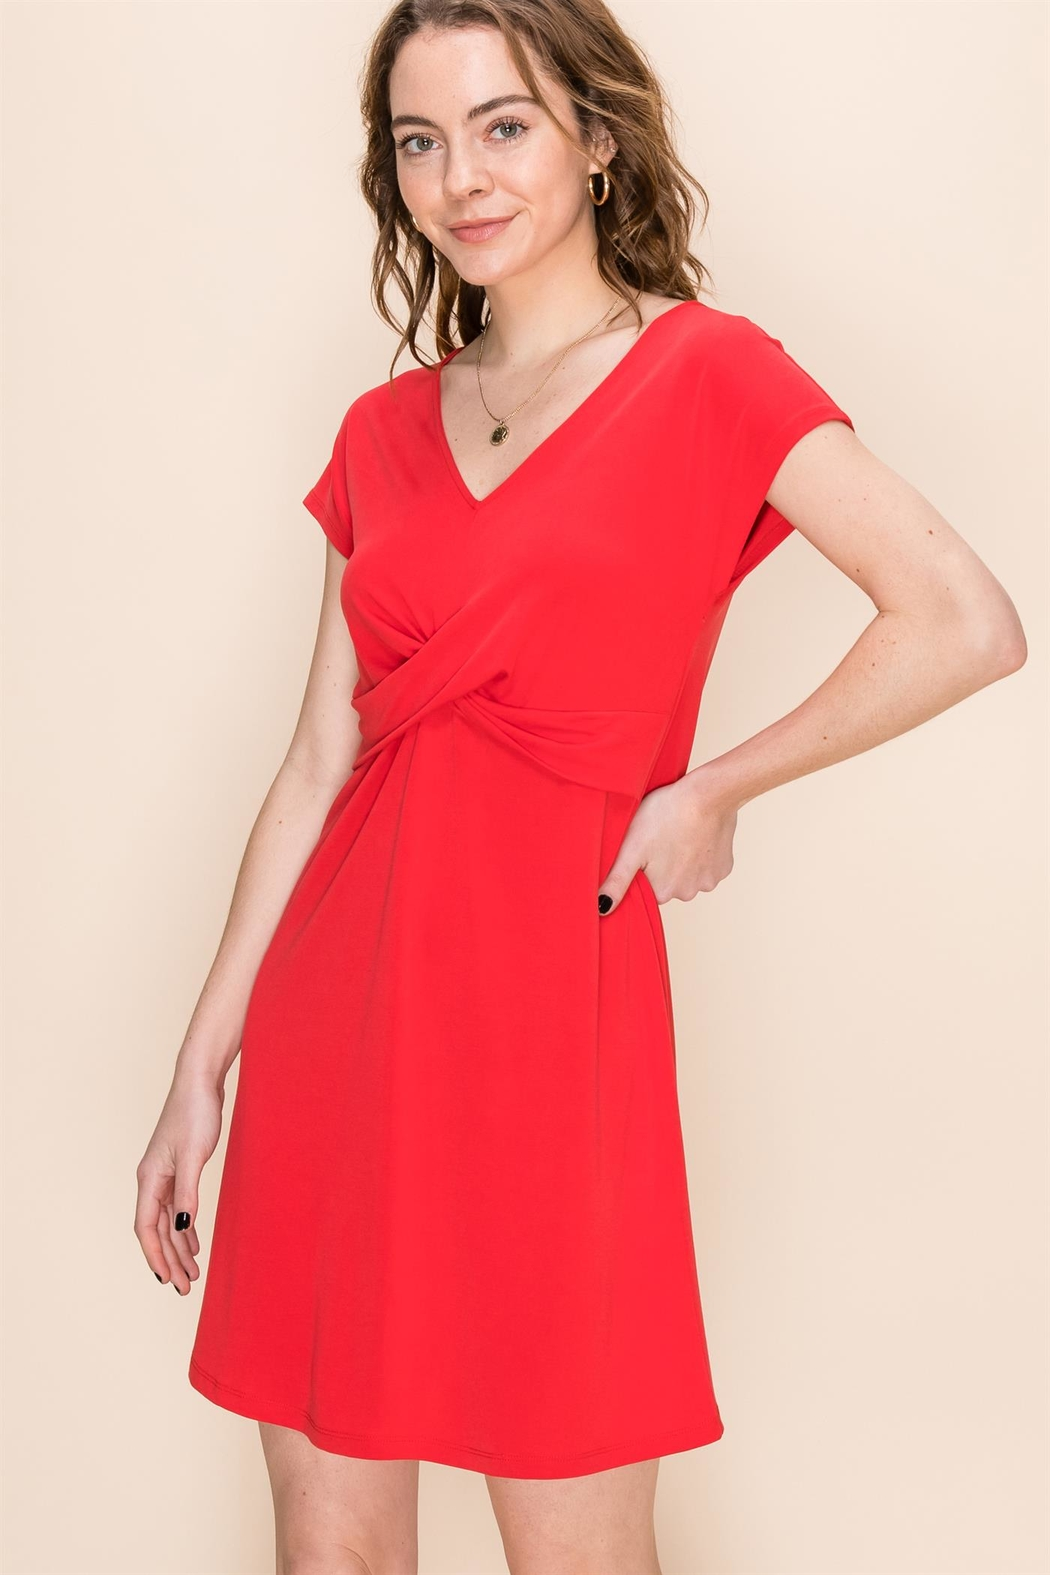 Double Zero Red Hot Summer Dress - Front Cropped Image